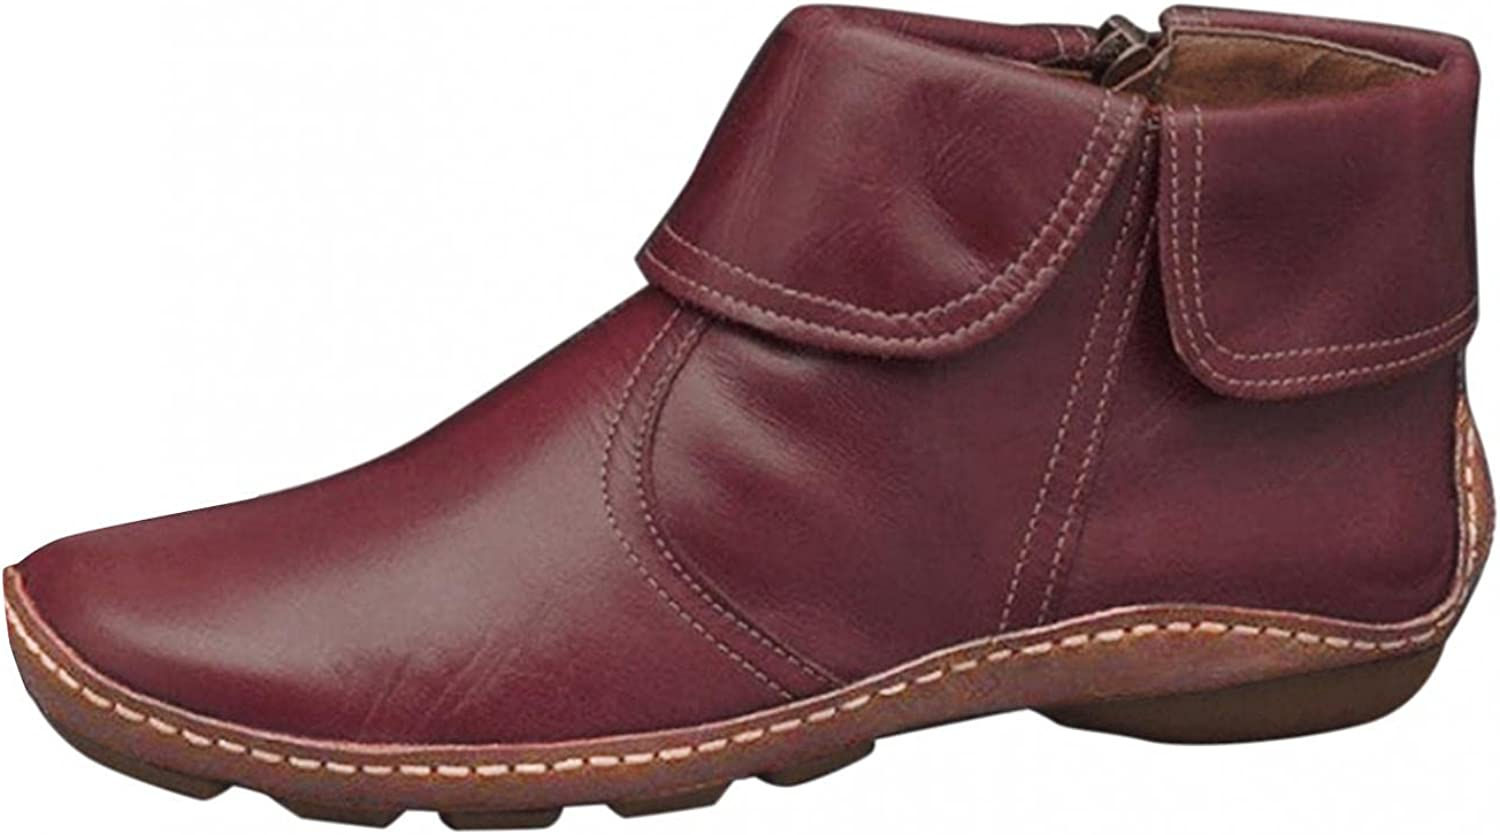 Gibobby Boots for Women Fashion Flats Boots Side Zipper Ankle Bo